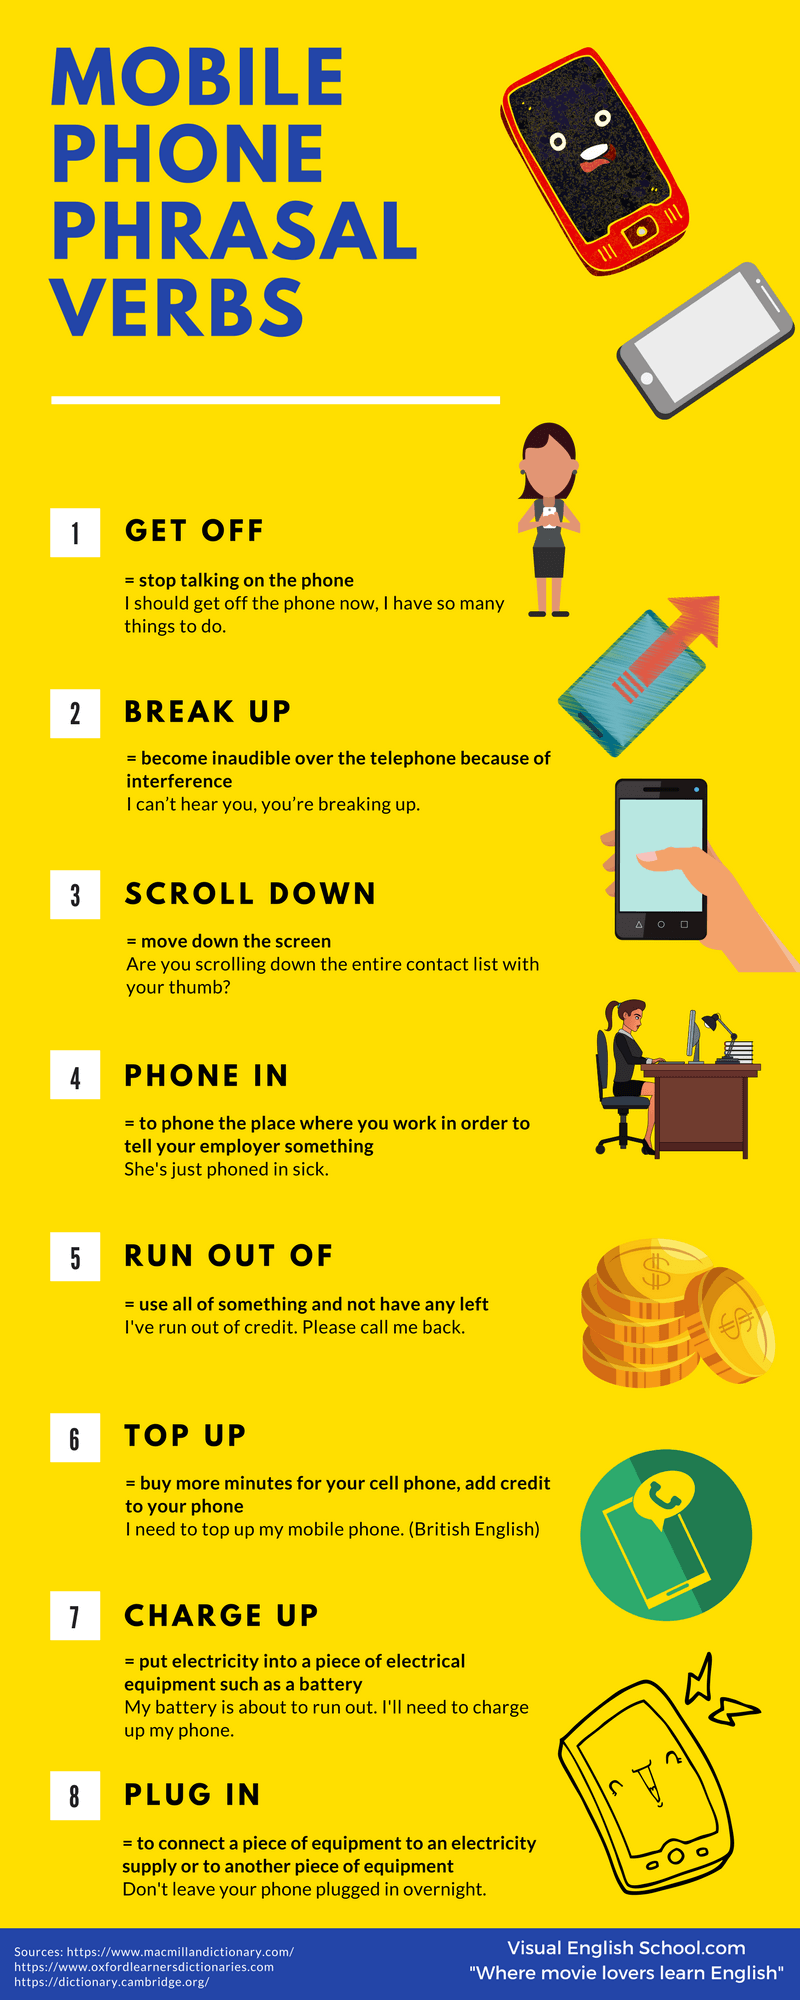 Mobile phone phrasal verbs infographic